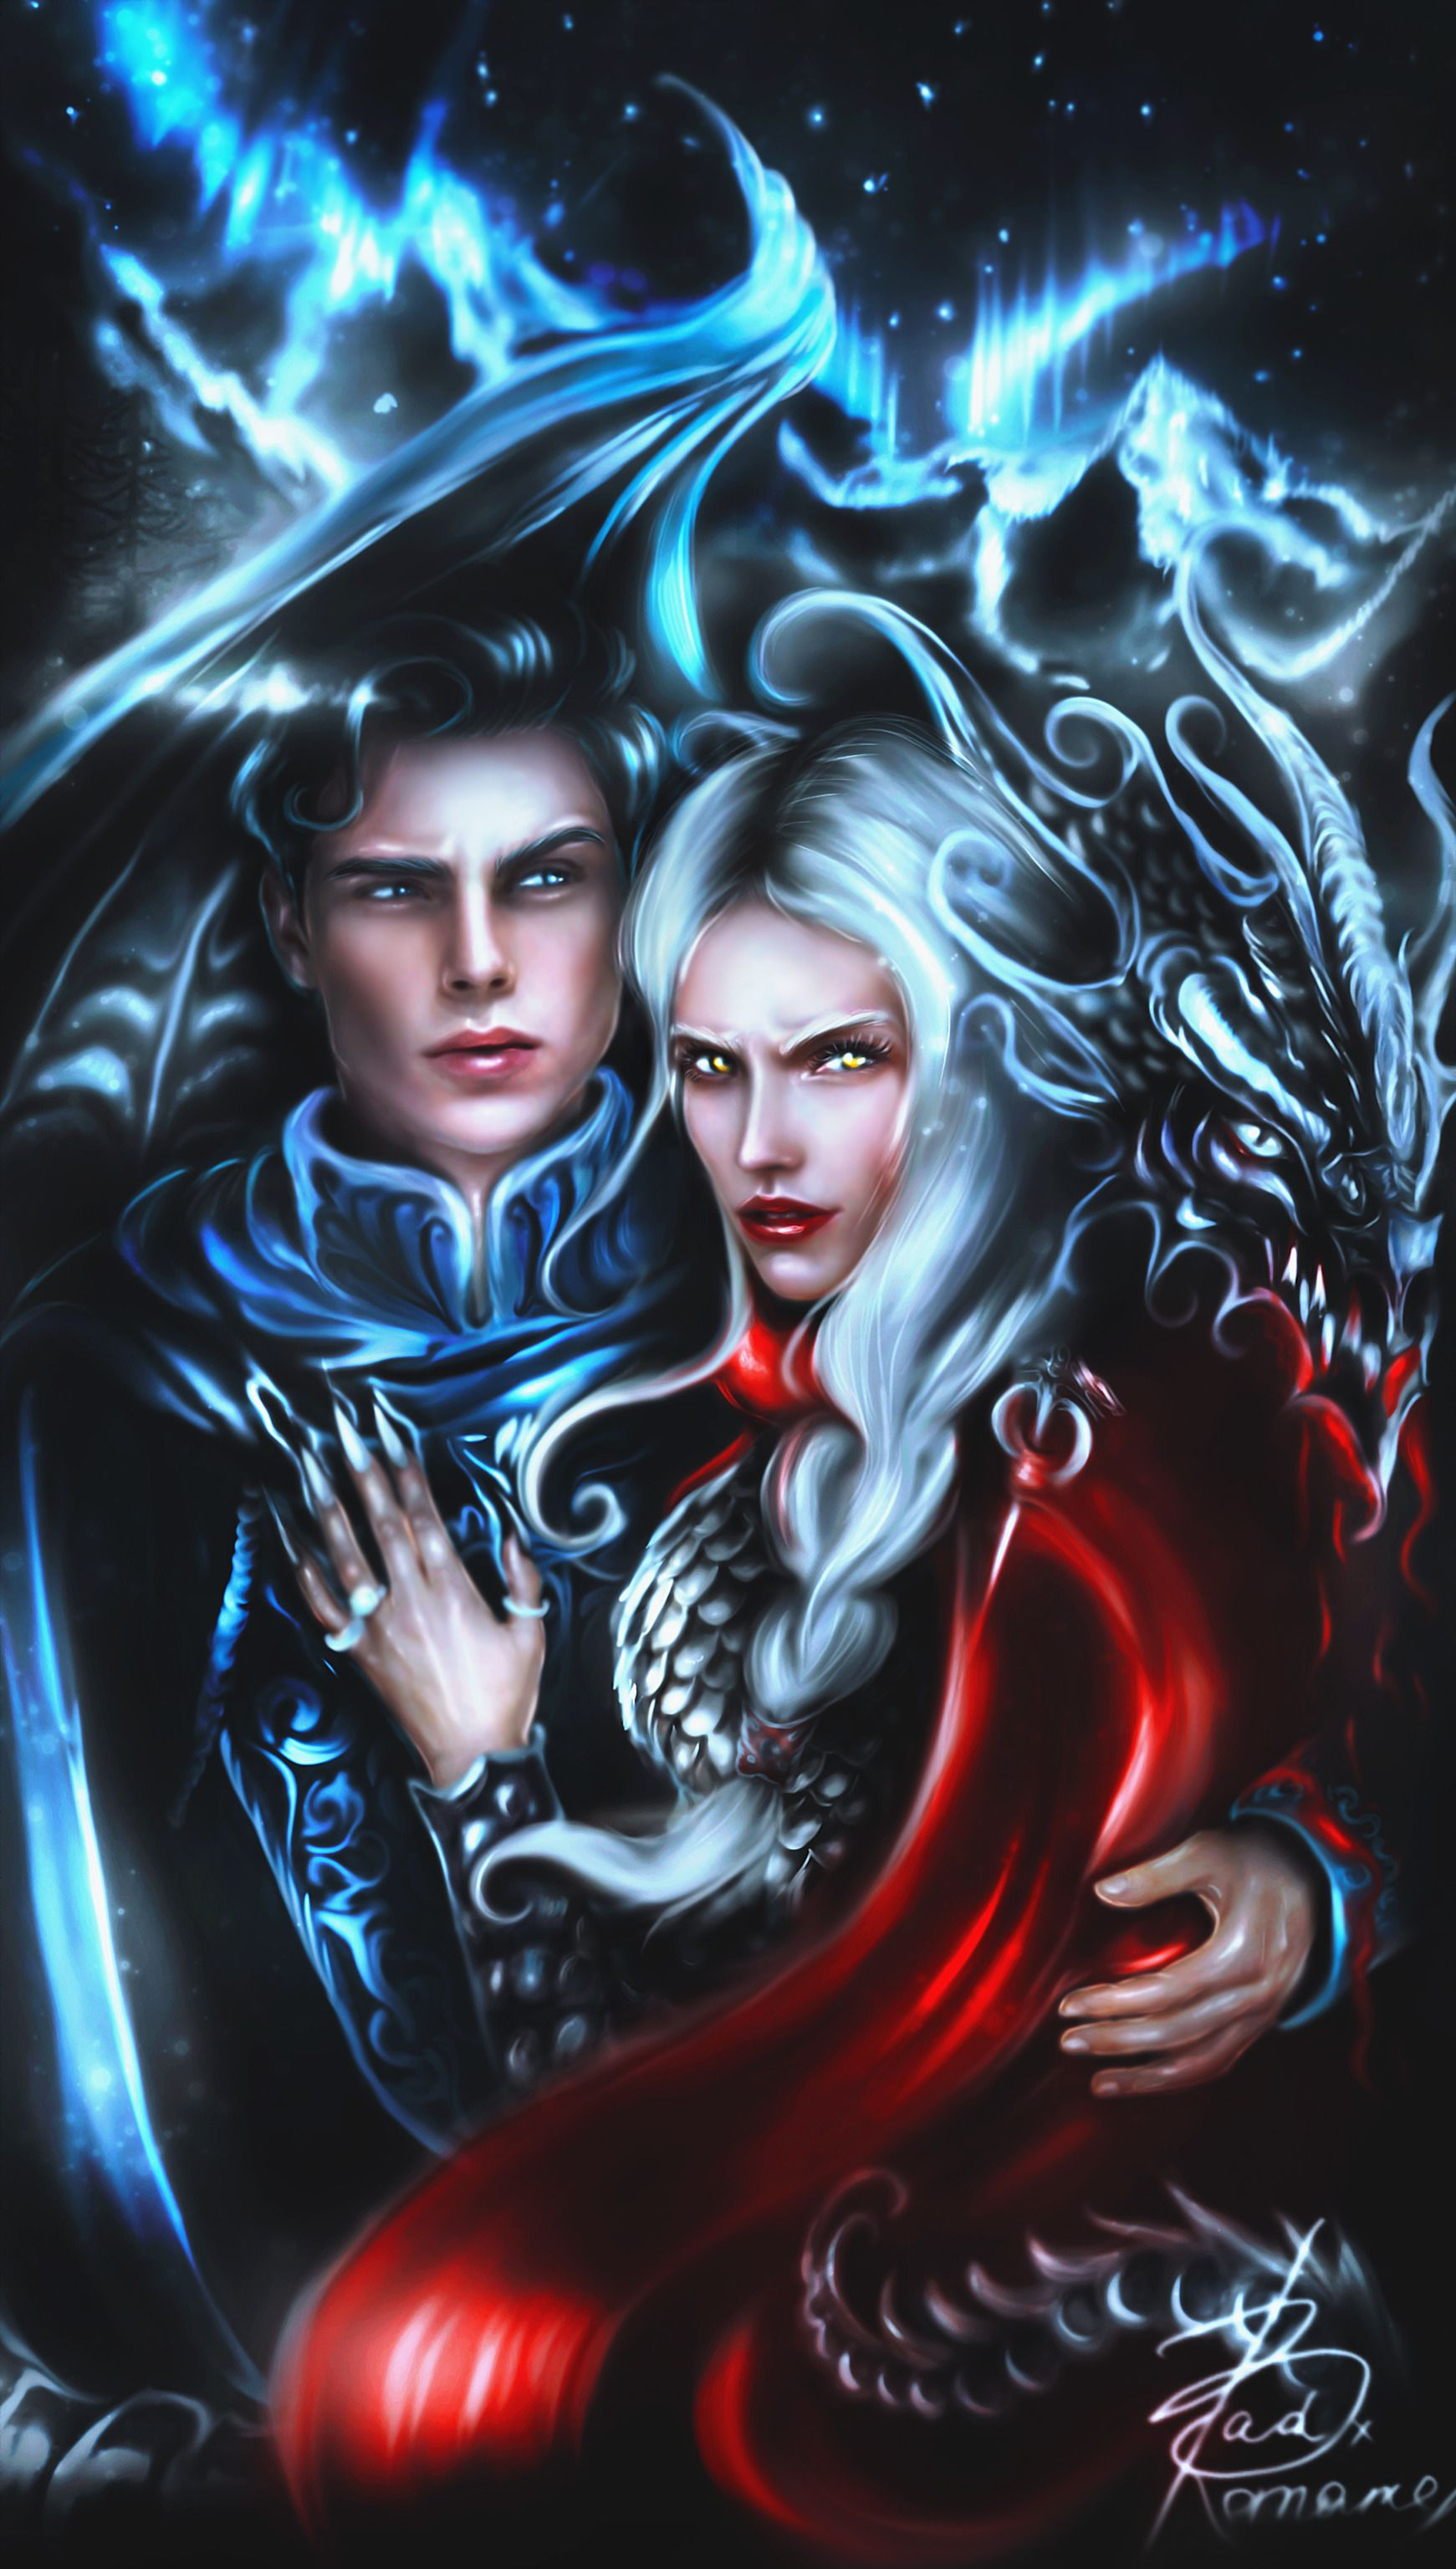 Pin By Molly Poole On Throne Of Glass In 2020 Throne Of Glass Fanart